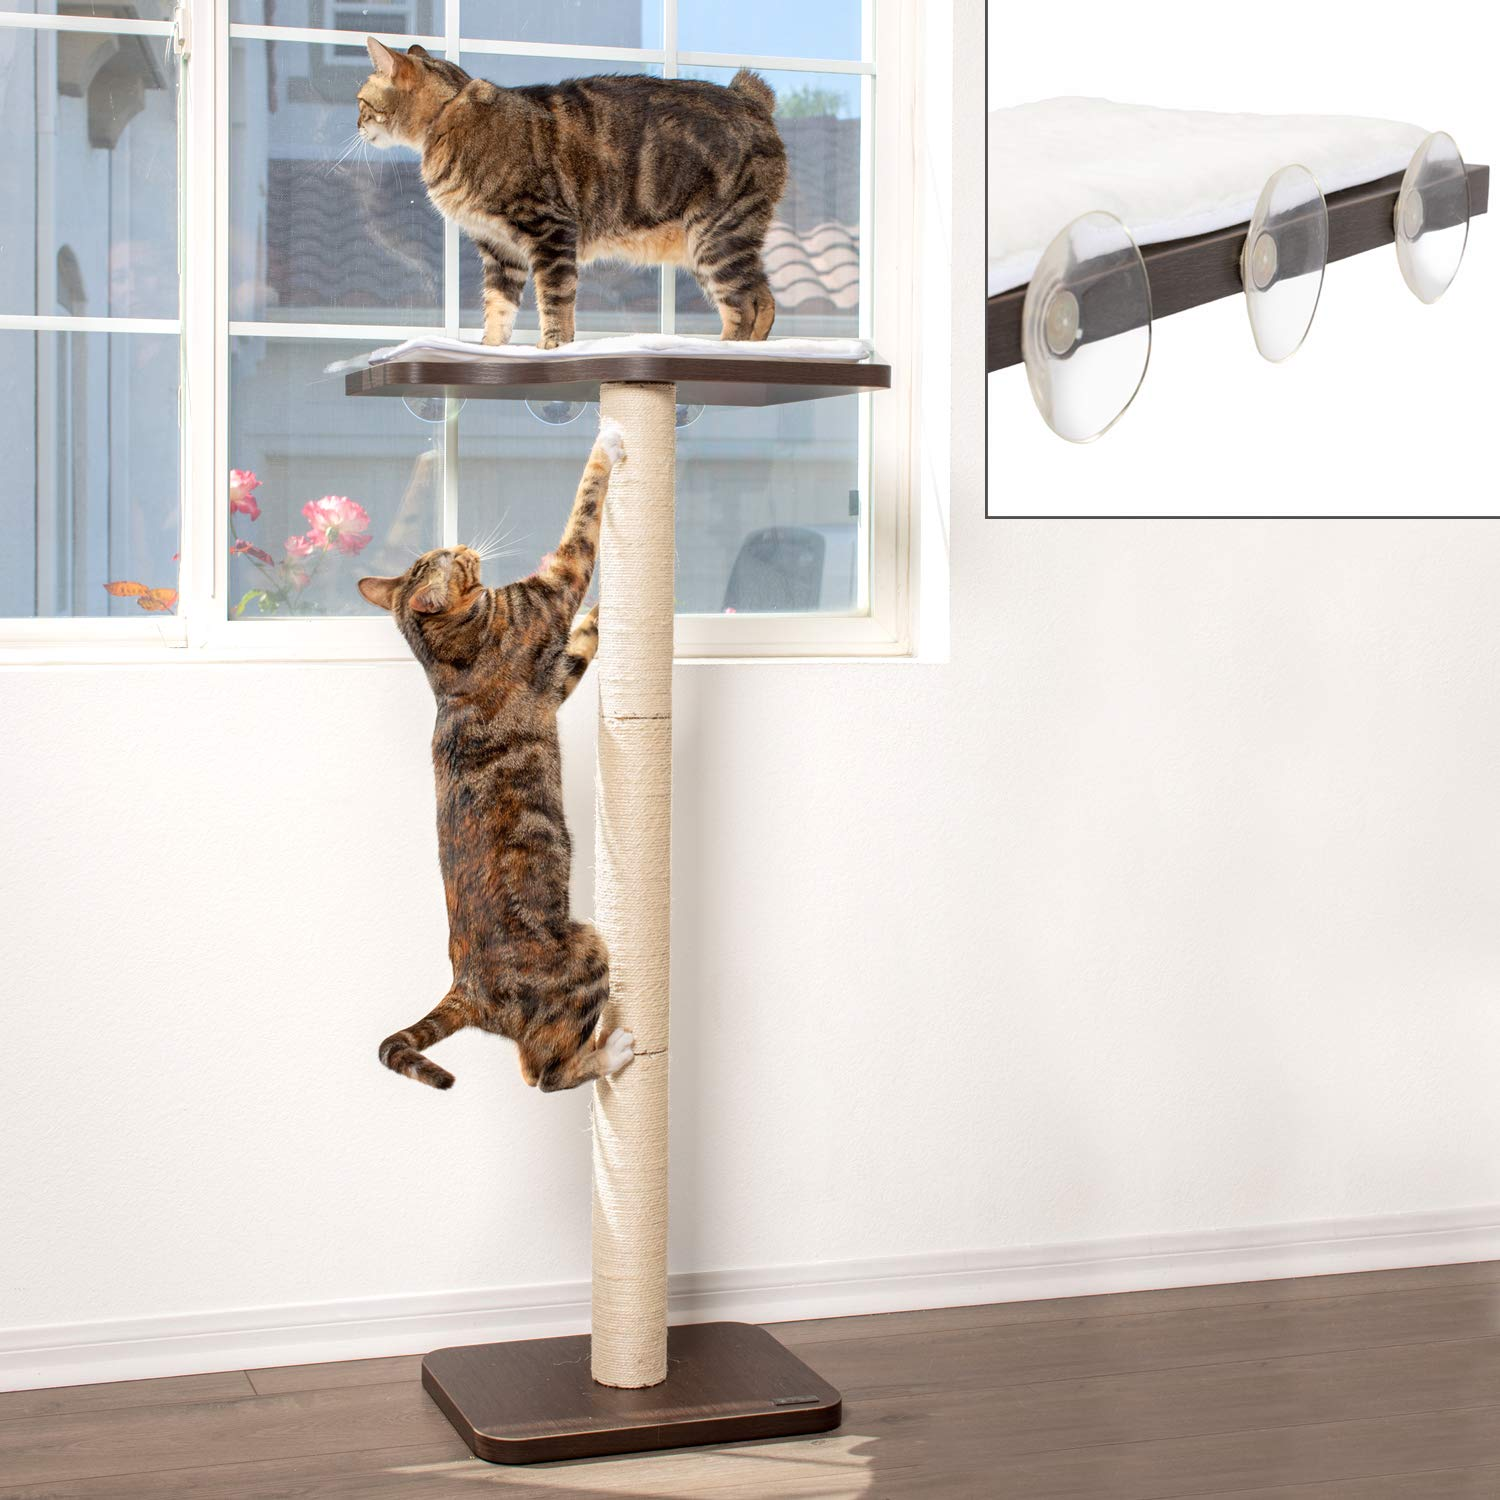 """PetFusion Ultimate Window Perch Cat Climber & Tree (45"""" Tall)   Sisal Scratching Posts, Modern Window Mounted Cat Furniture   Easy to Assemble   1 Year Warranty for Manufacturer Defects"""